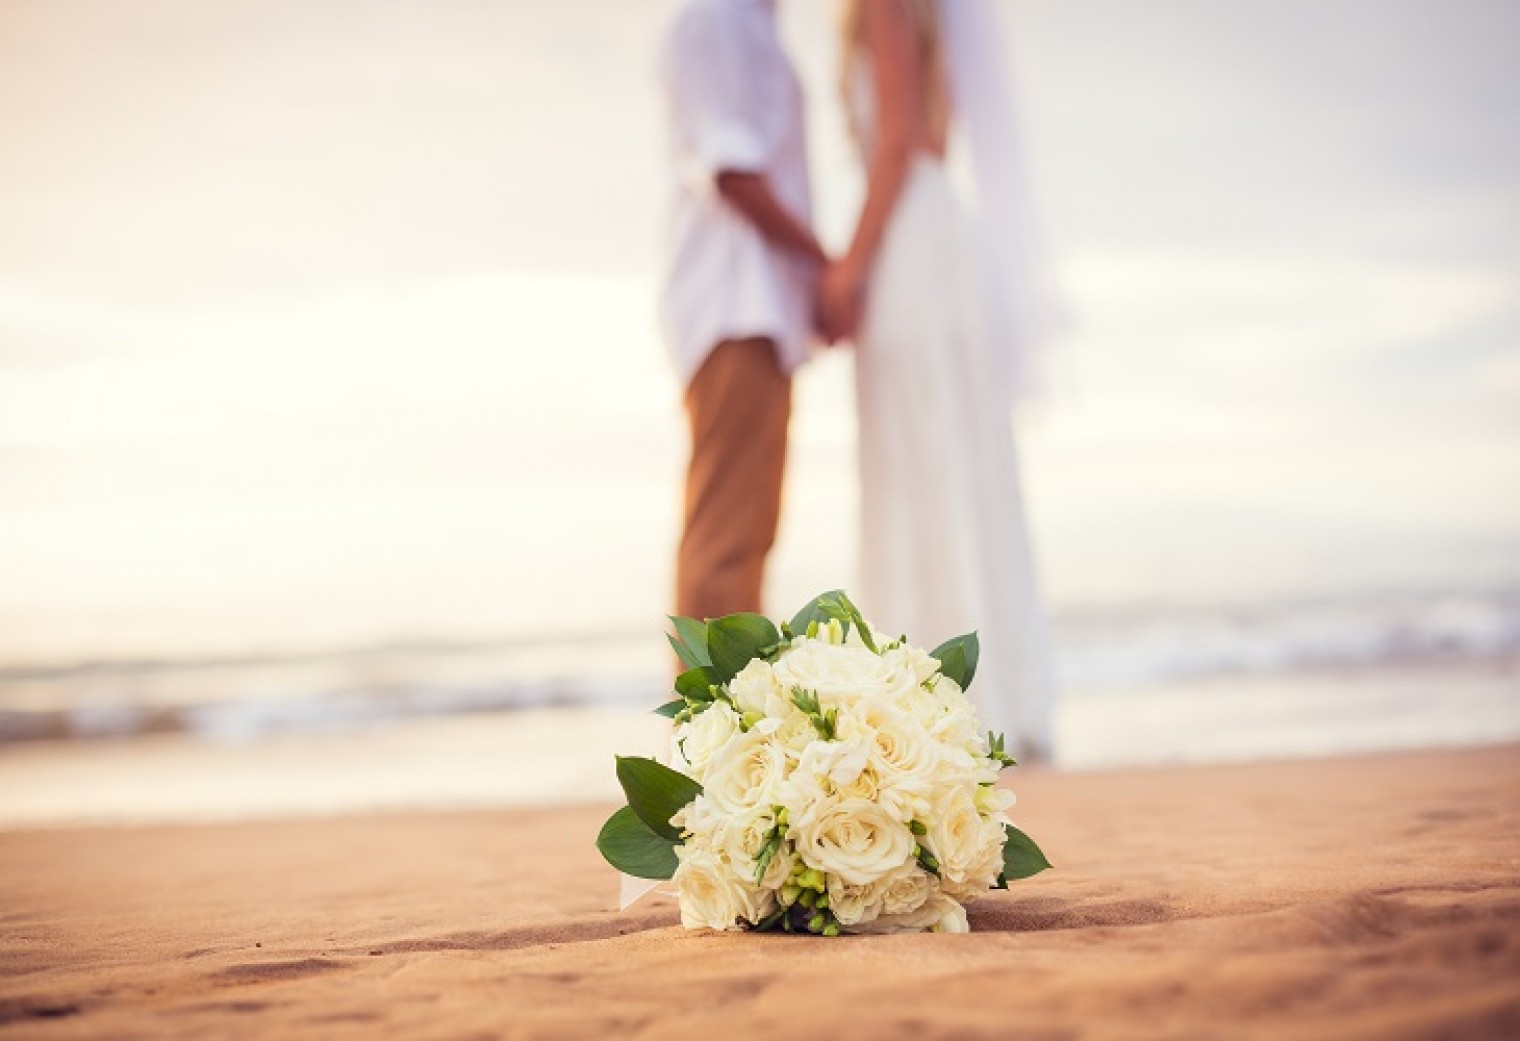 Weddings Abroad: Find your perfect destination